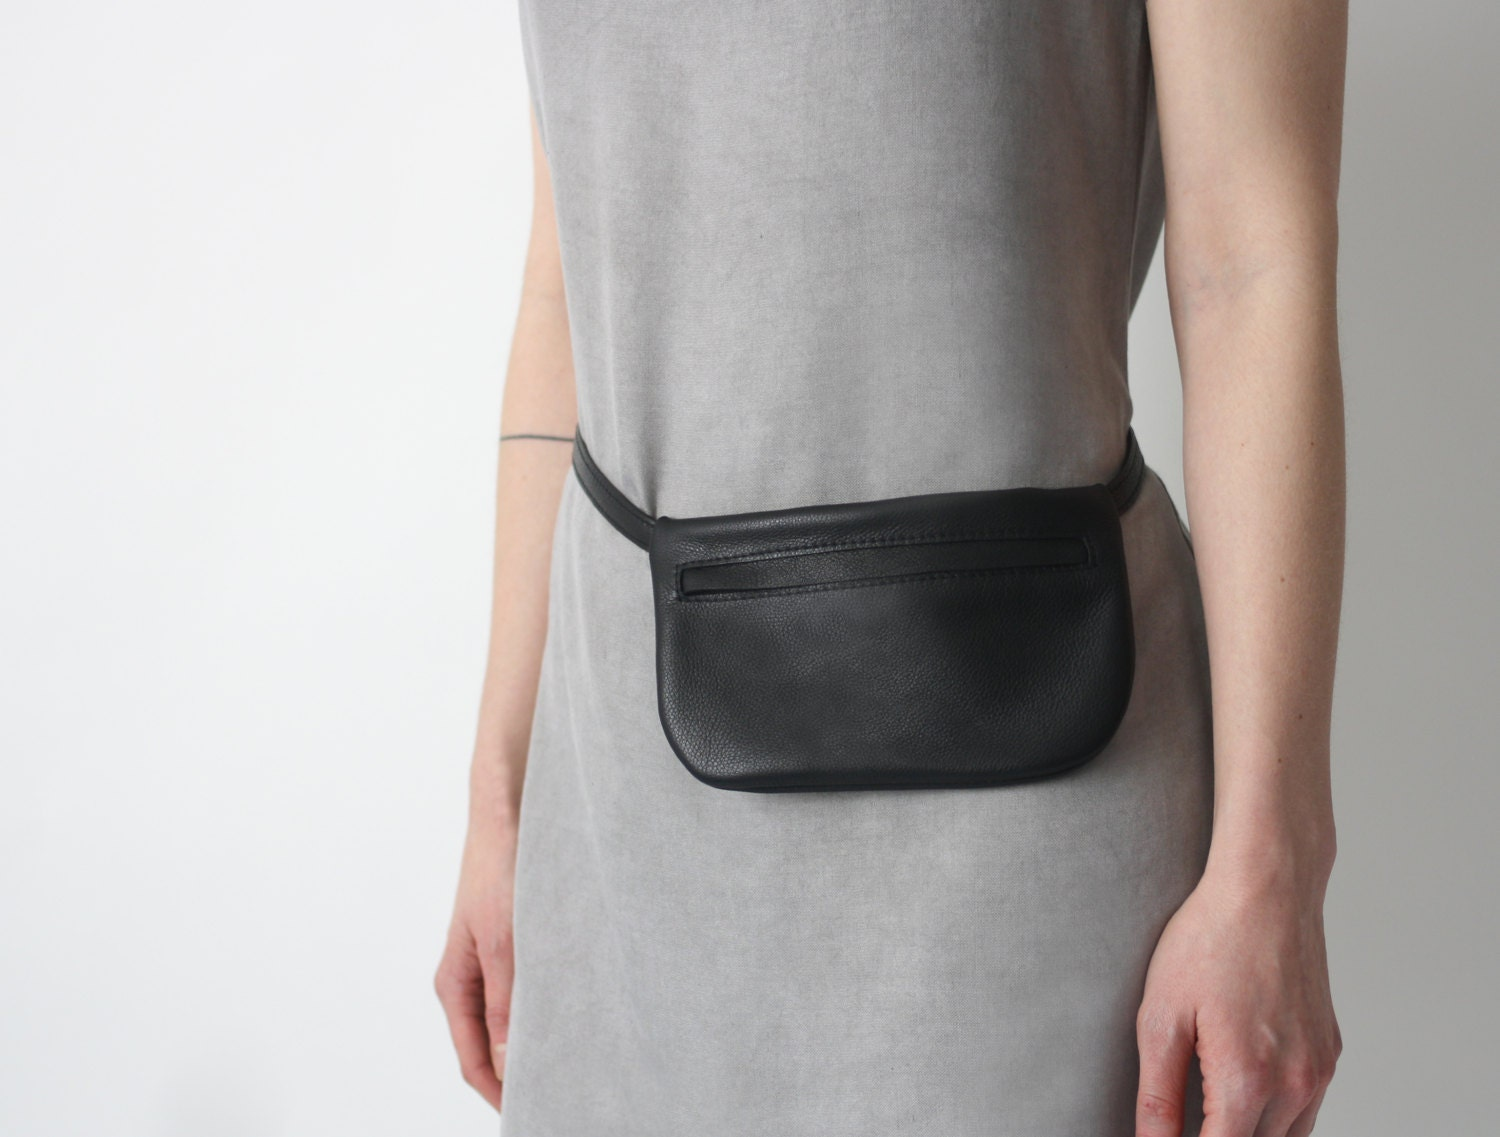 Belt Bag Black Leather Flat Bum Bag Hip Bag Fanny Pack